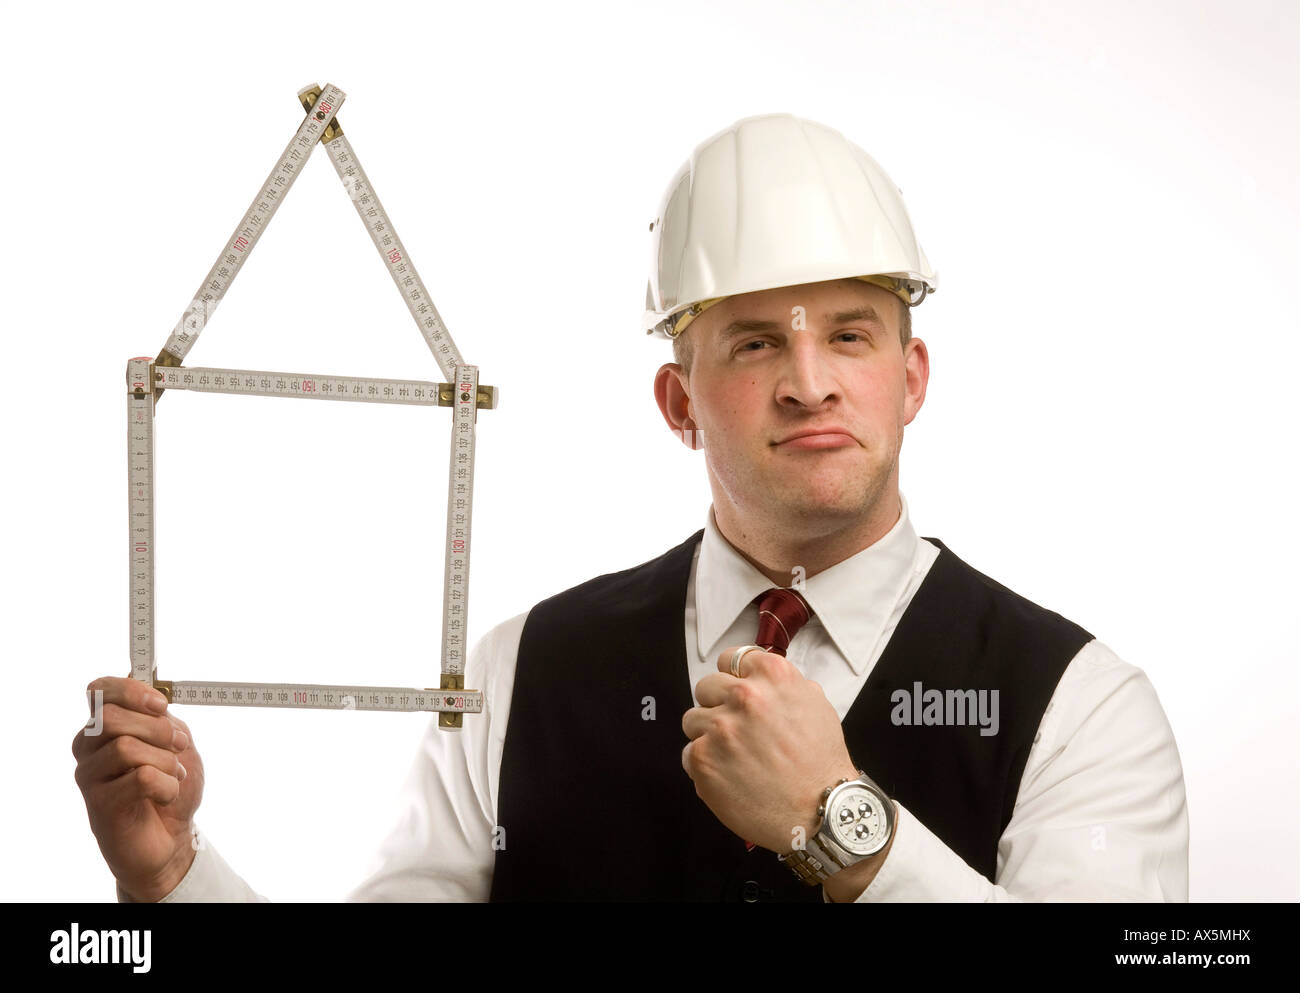 Man dressed in suit holding yardstick shaped into a house - Stock Image